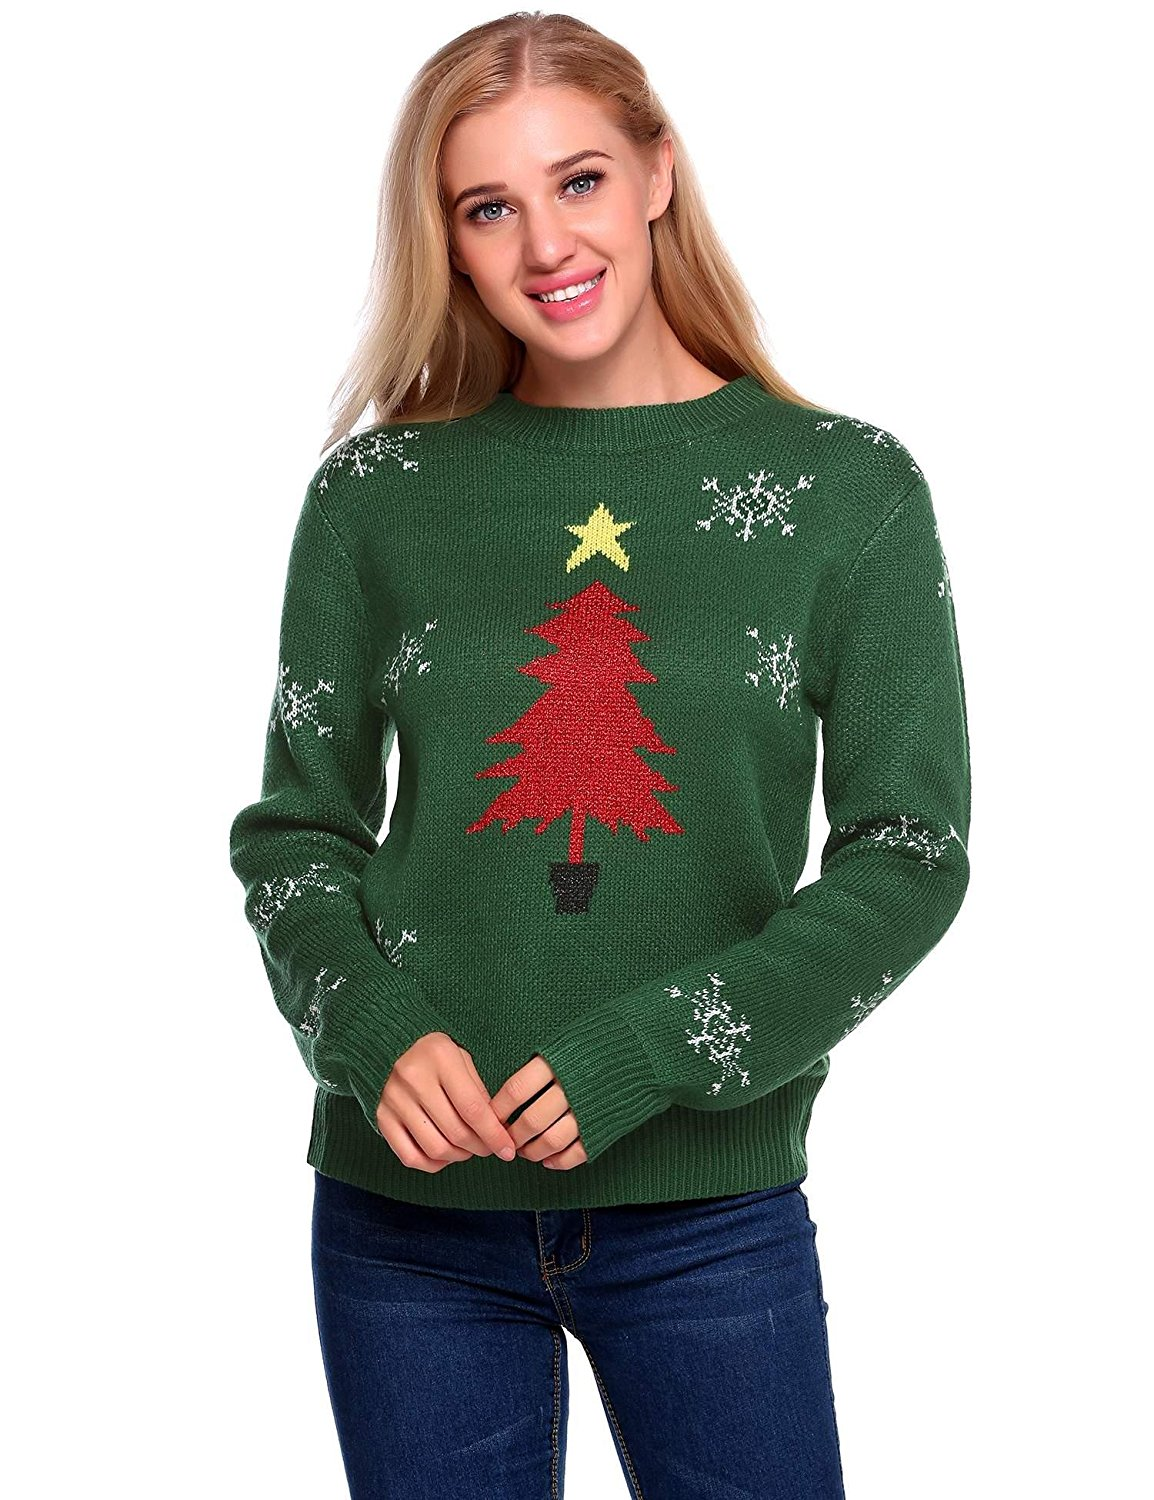 christmas sweaters for women - HD1154×1500